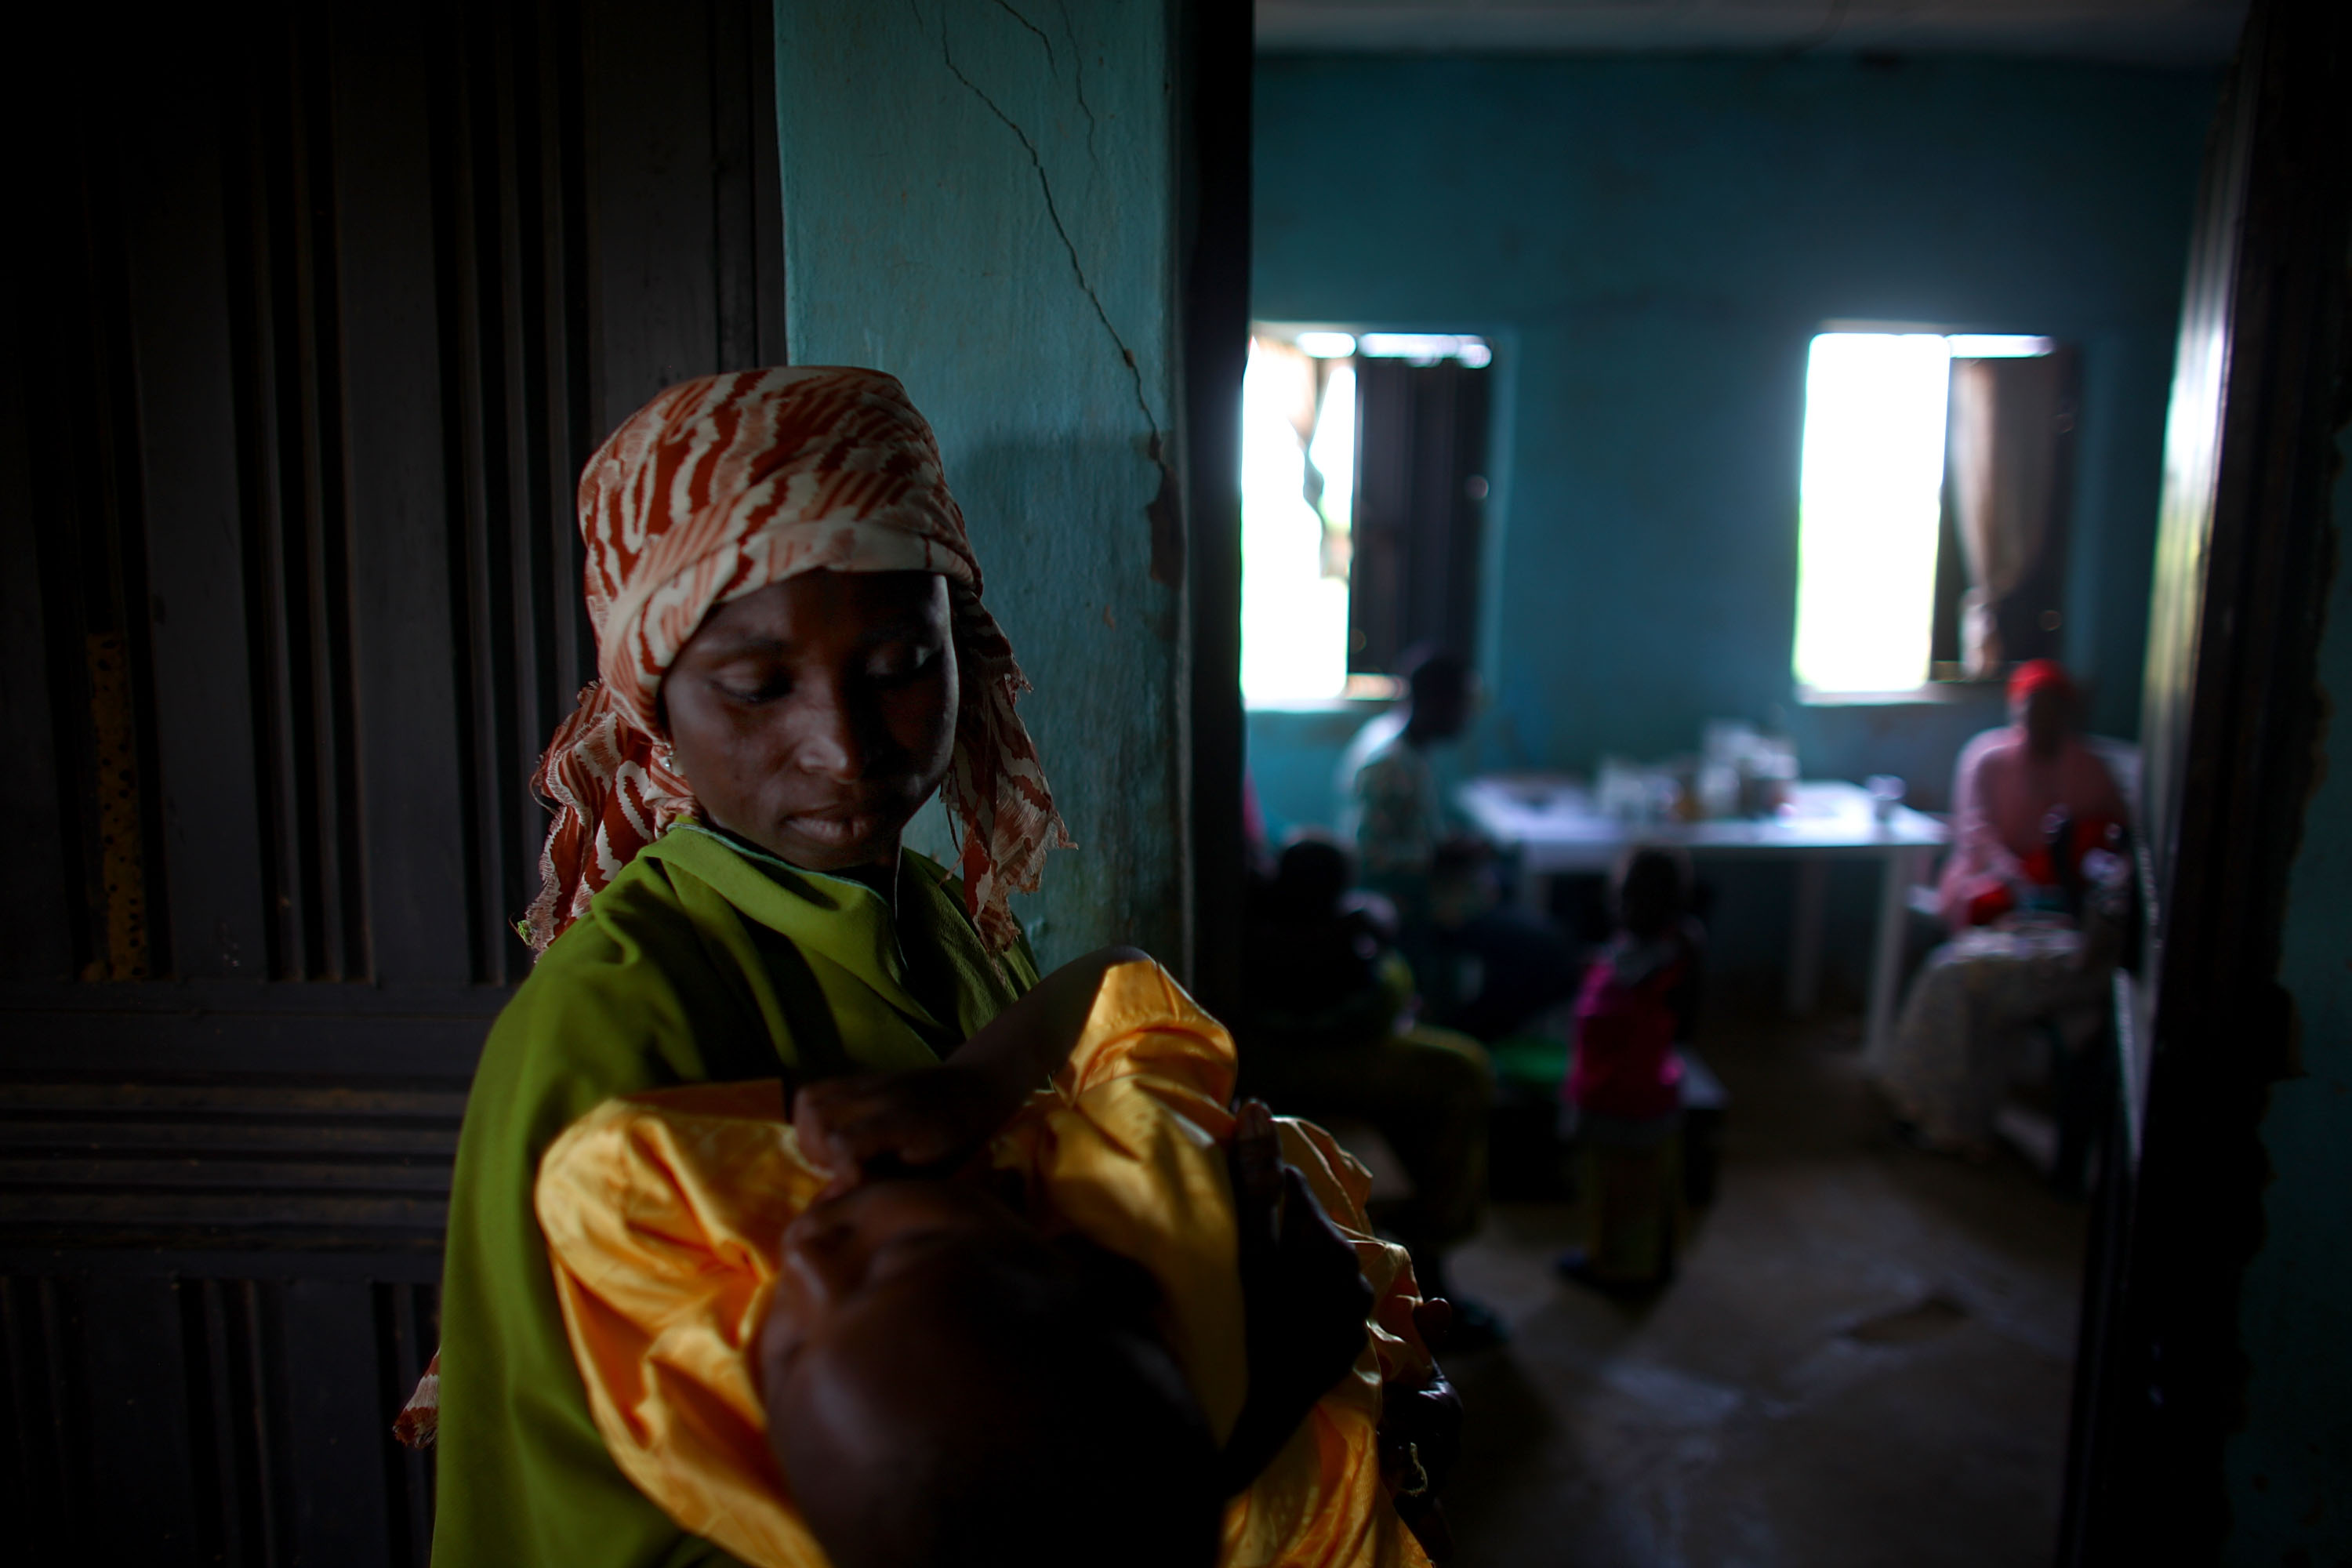 Gado Labbo holds her 5-year-old son, Yusuf, at the clinic in Dareta. In 2010, when Yusuf first entered the clinic, he had a blood lead level of 150 micrograms per deciliter -- 30 times higher than what the Centers for Disease Control and Prevention considers dangerous.